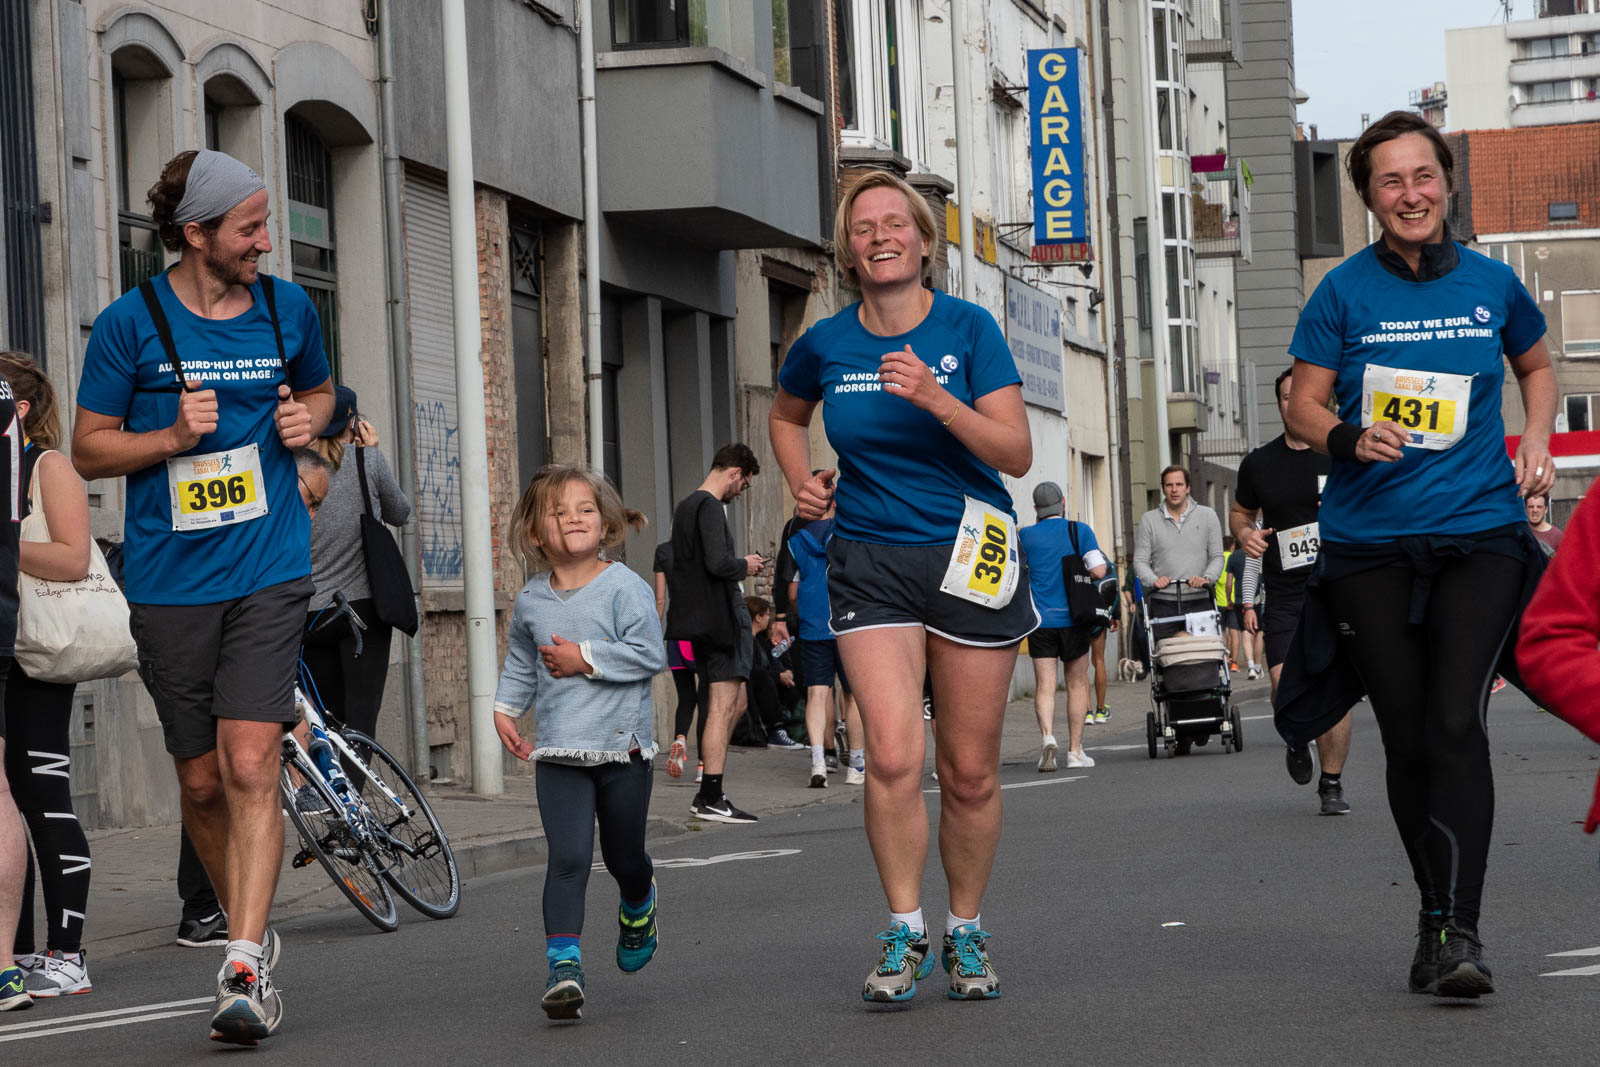 PIC_EVENT_20181020_BRUSSELS-CANAL-RUN_NIKON_026.jpg